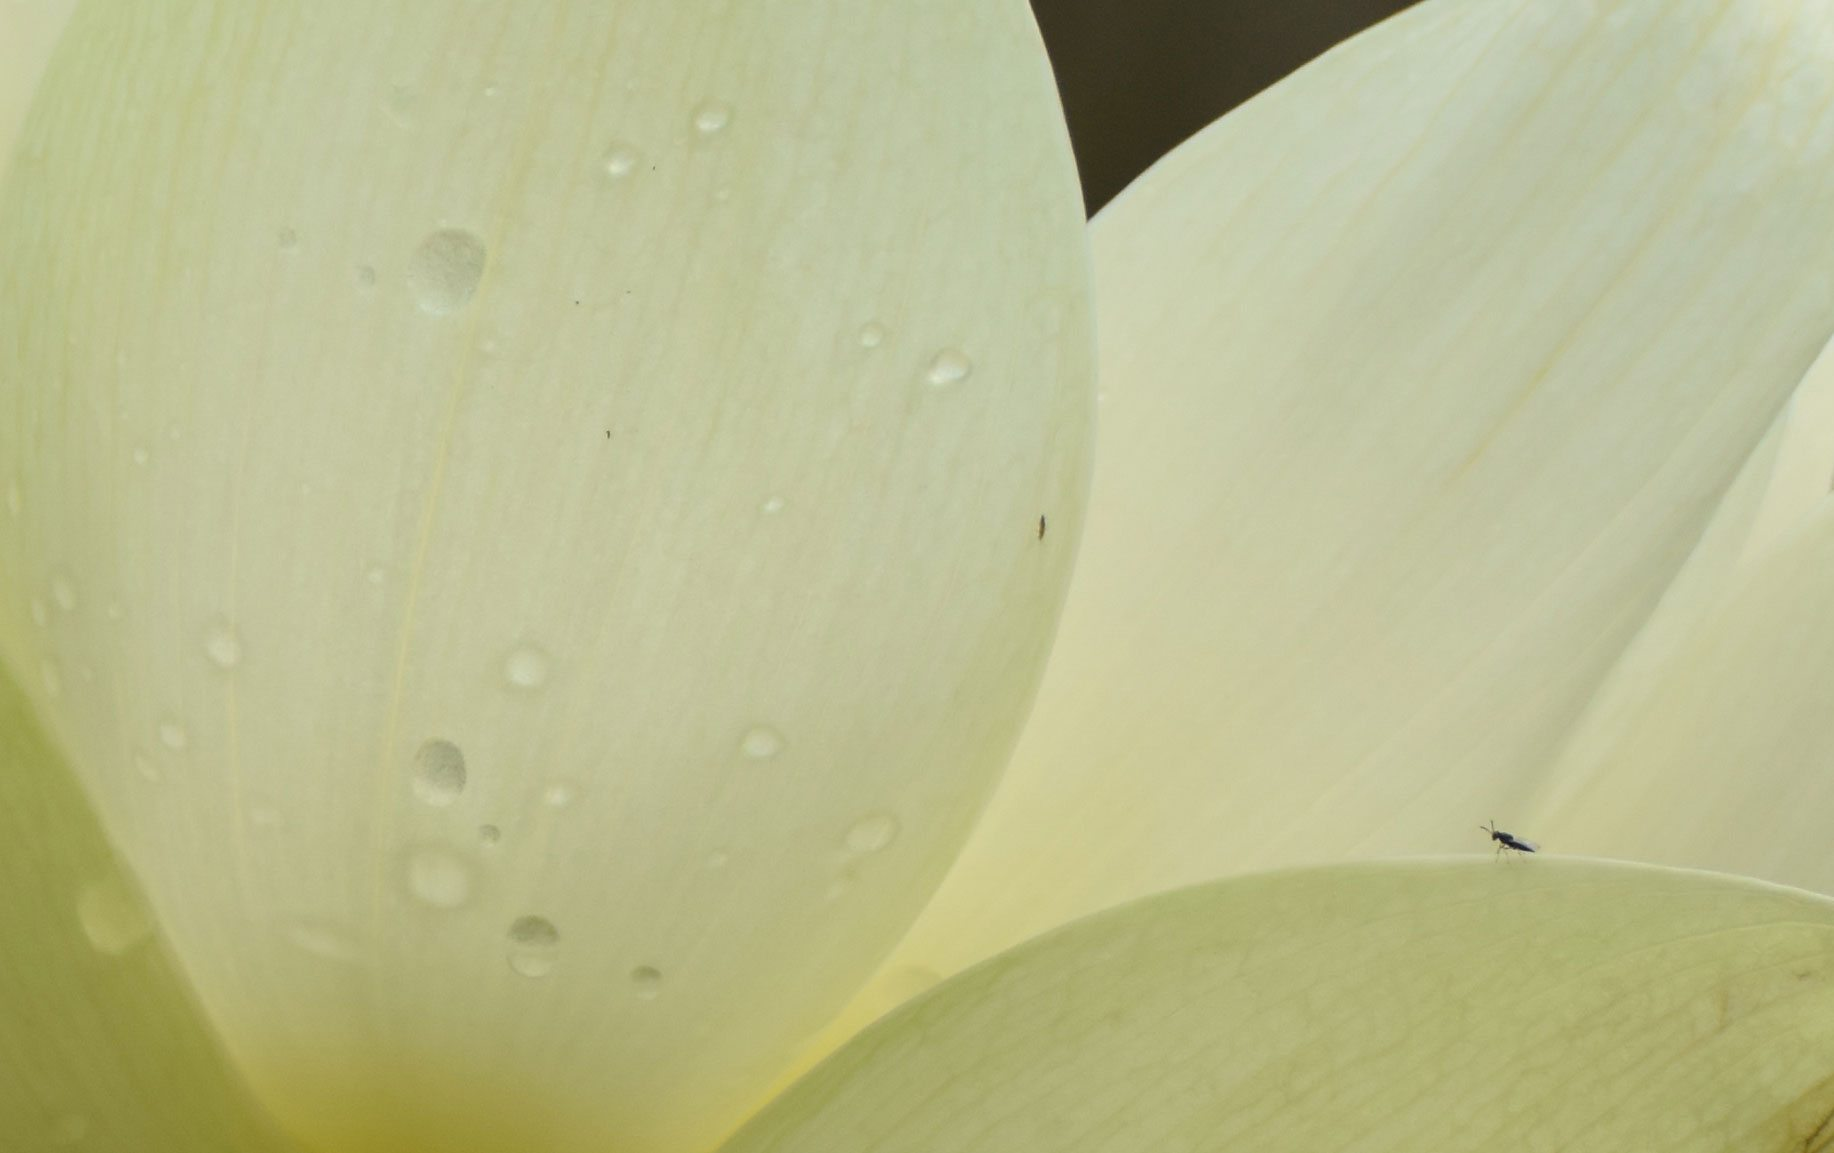 Image of tiny black bug on the cream petals of an open lotus blossom - photo taken by Sharon Ngo, Instructor, Fujian White Crane Kung Fu & Tai Chi Martial Arts